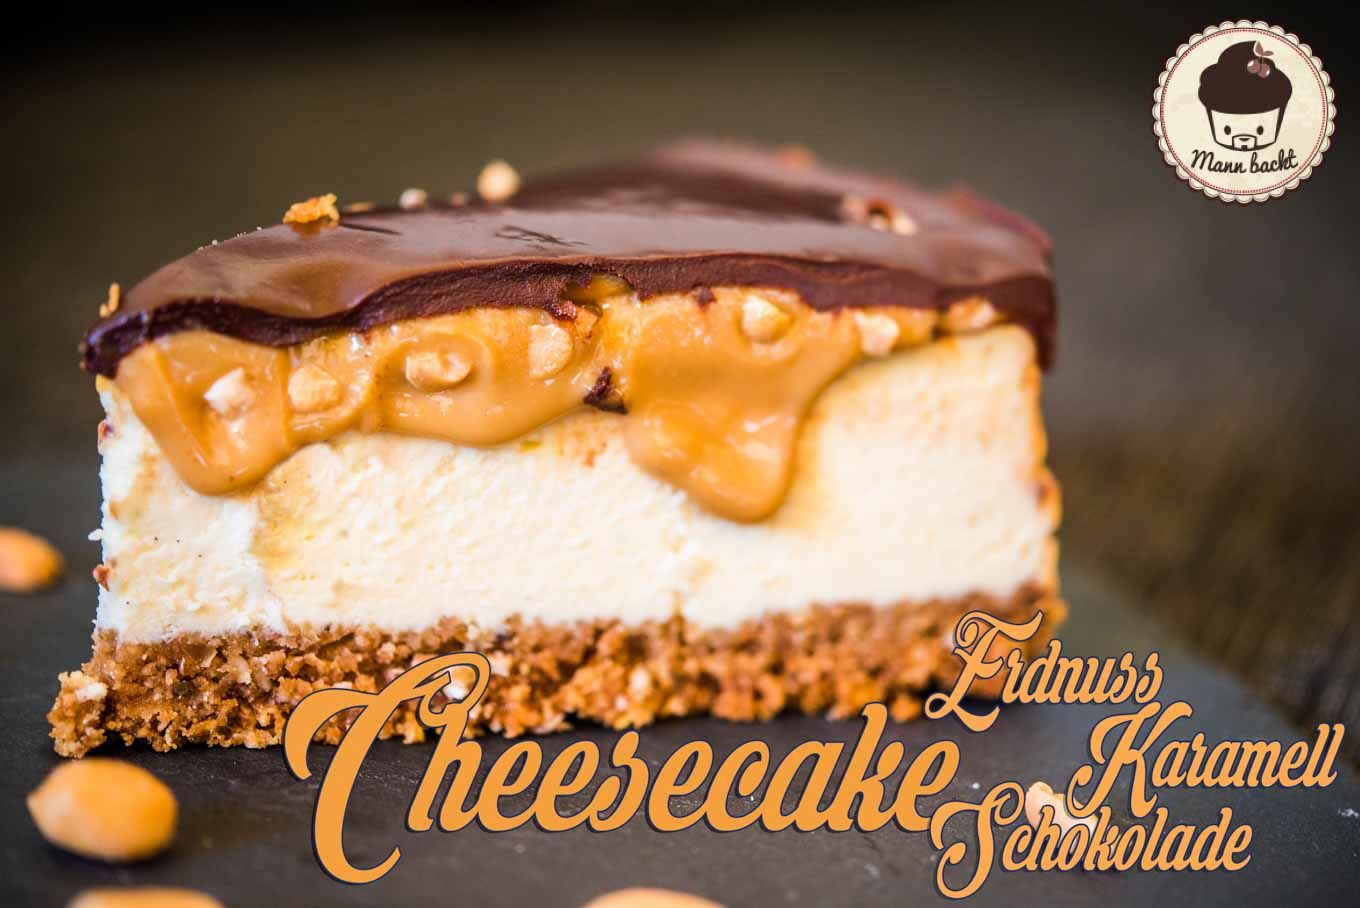 Photo of Peanut Caramel Chocolate Cheesecake – Man Bakes